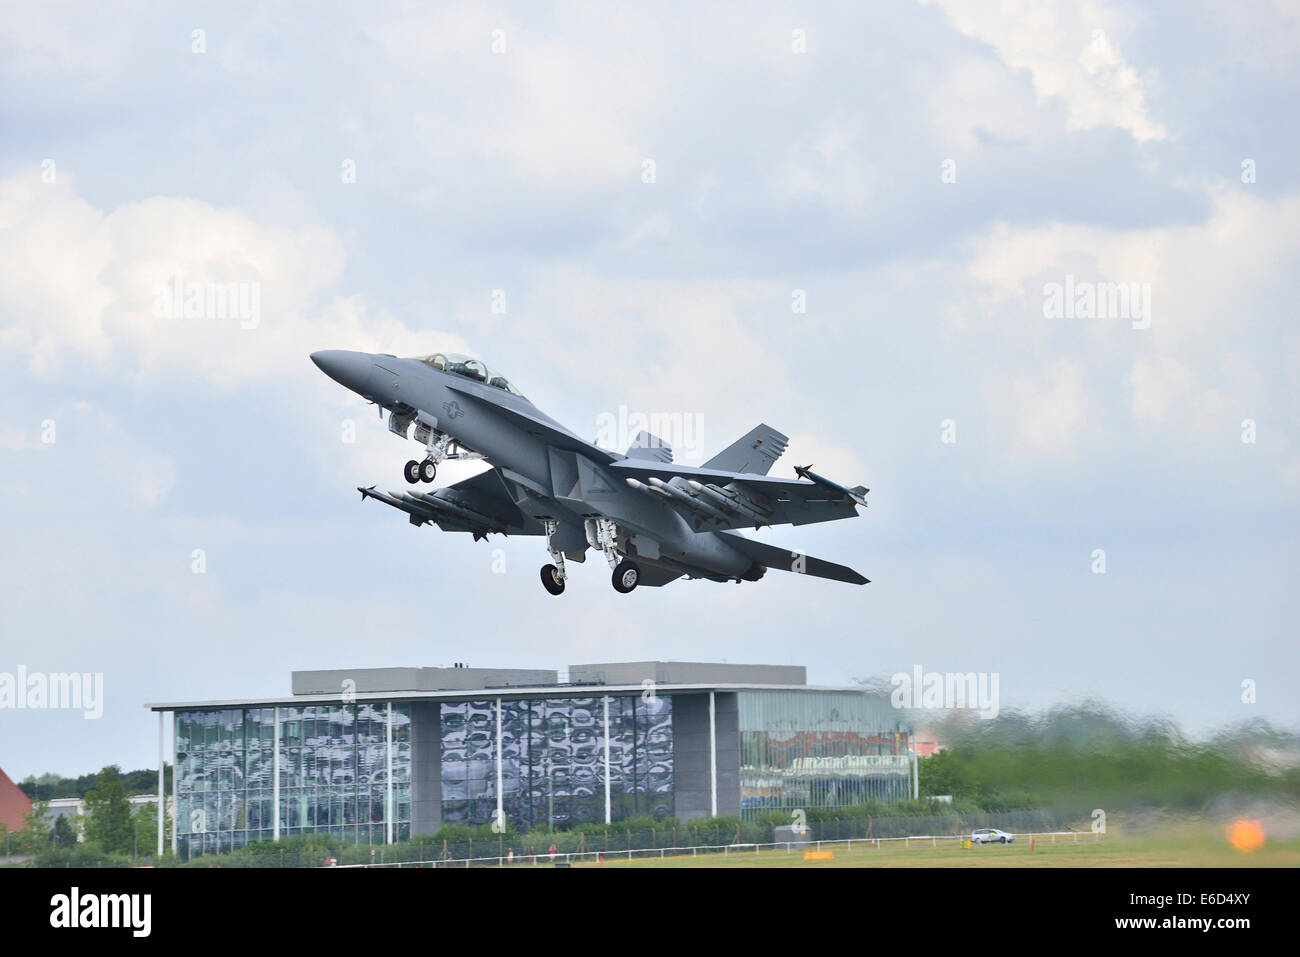 a A Eurofighter Typhoon takes off at Farnborough International Airshow. 2014 - Stock Image